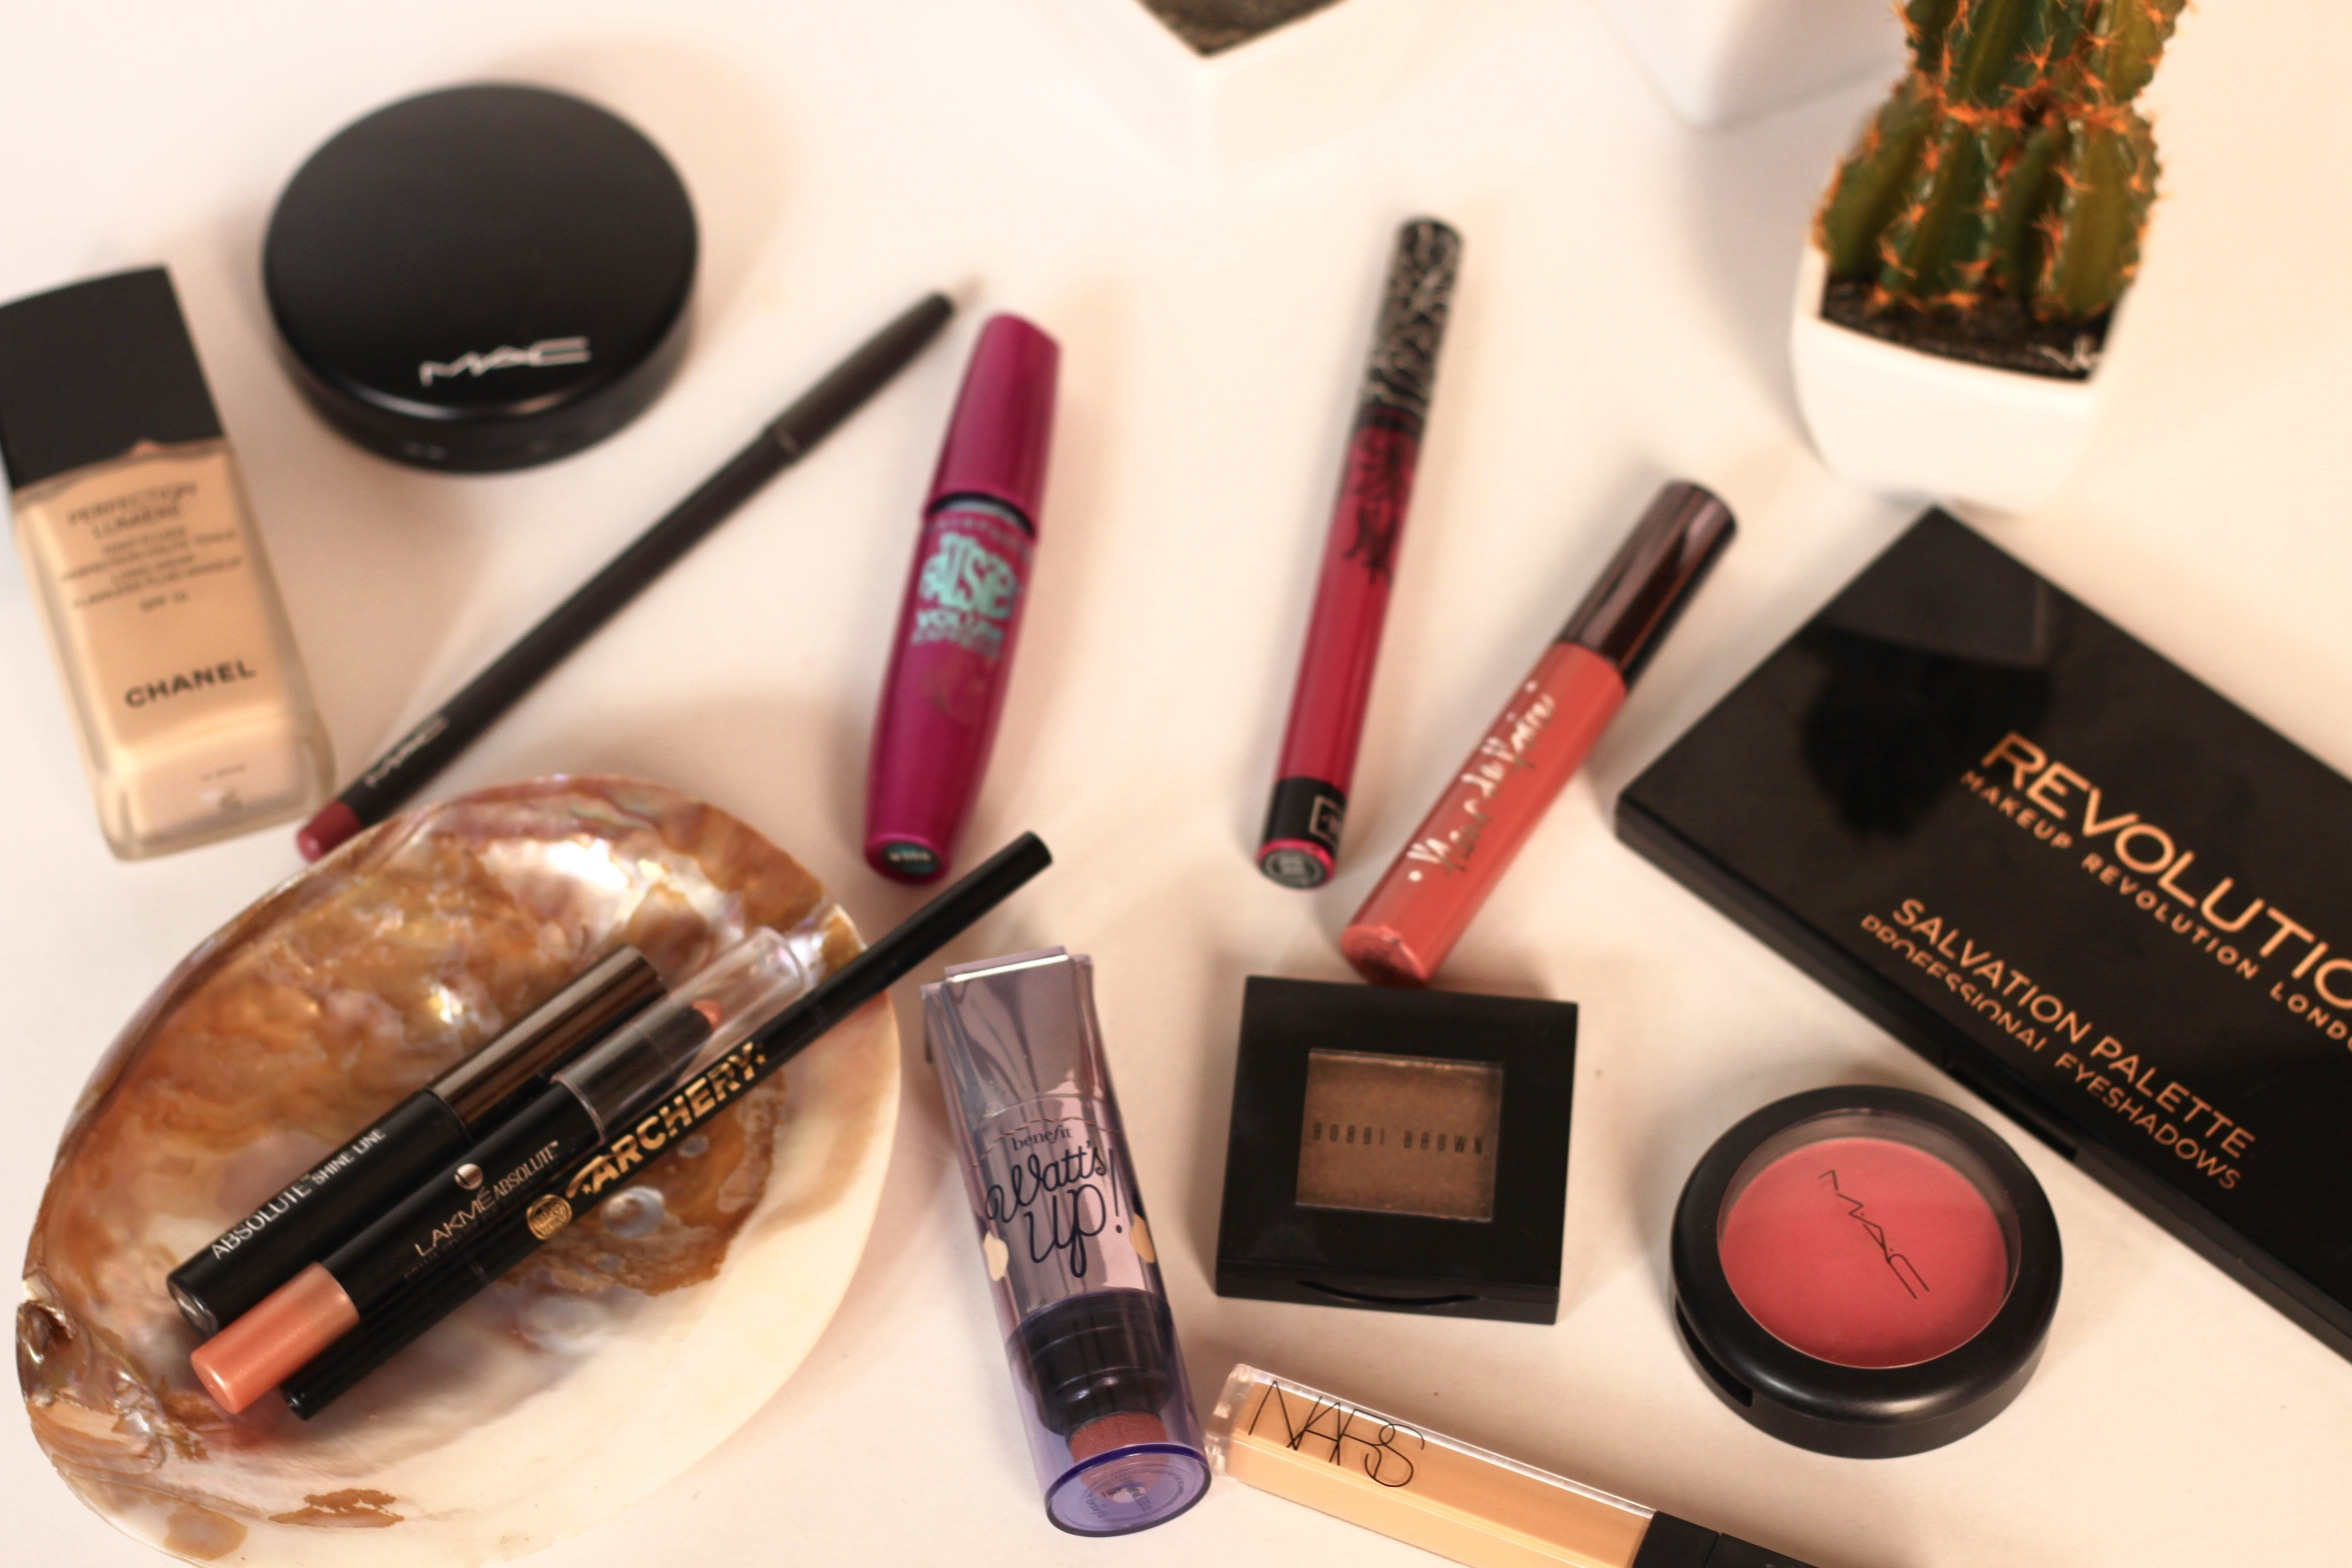 2015 makeup favourites, 2015 favourites, best products of 2015, best makeup products of 2015,